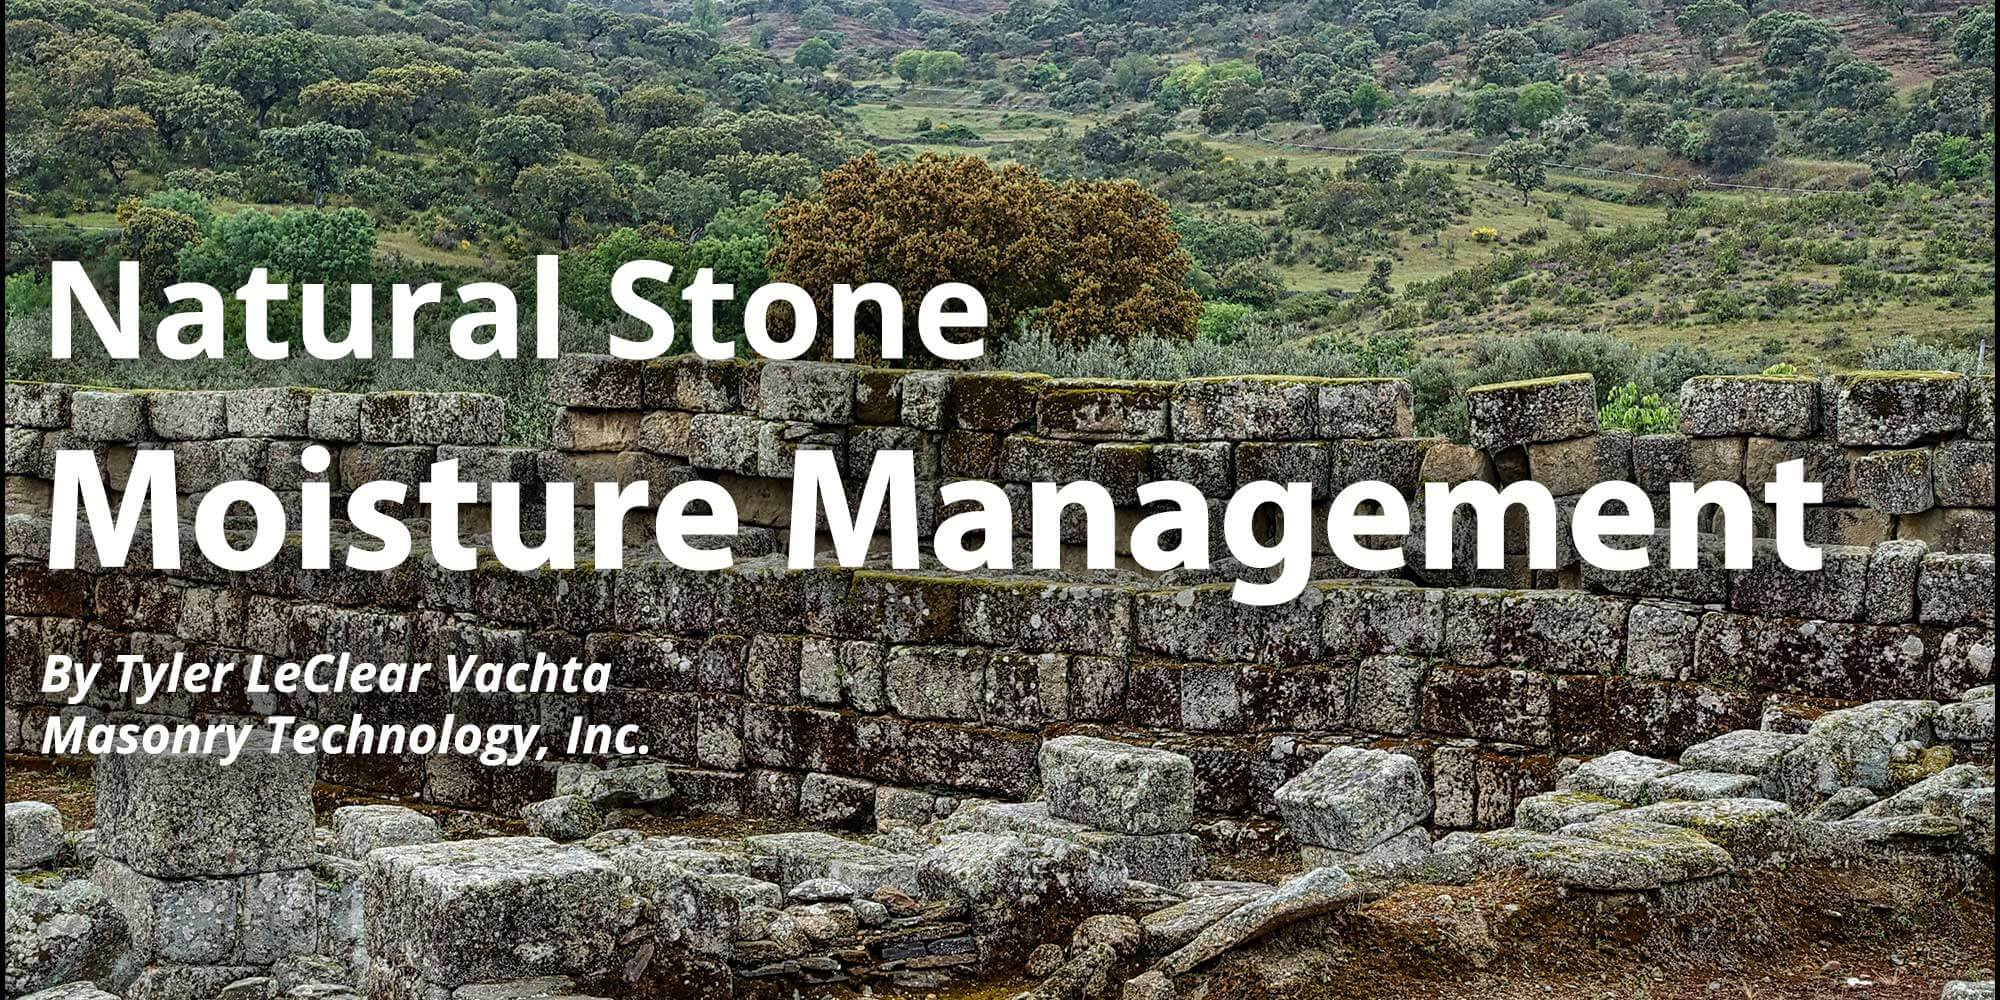 Natural Stone Moisture Management